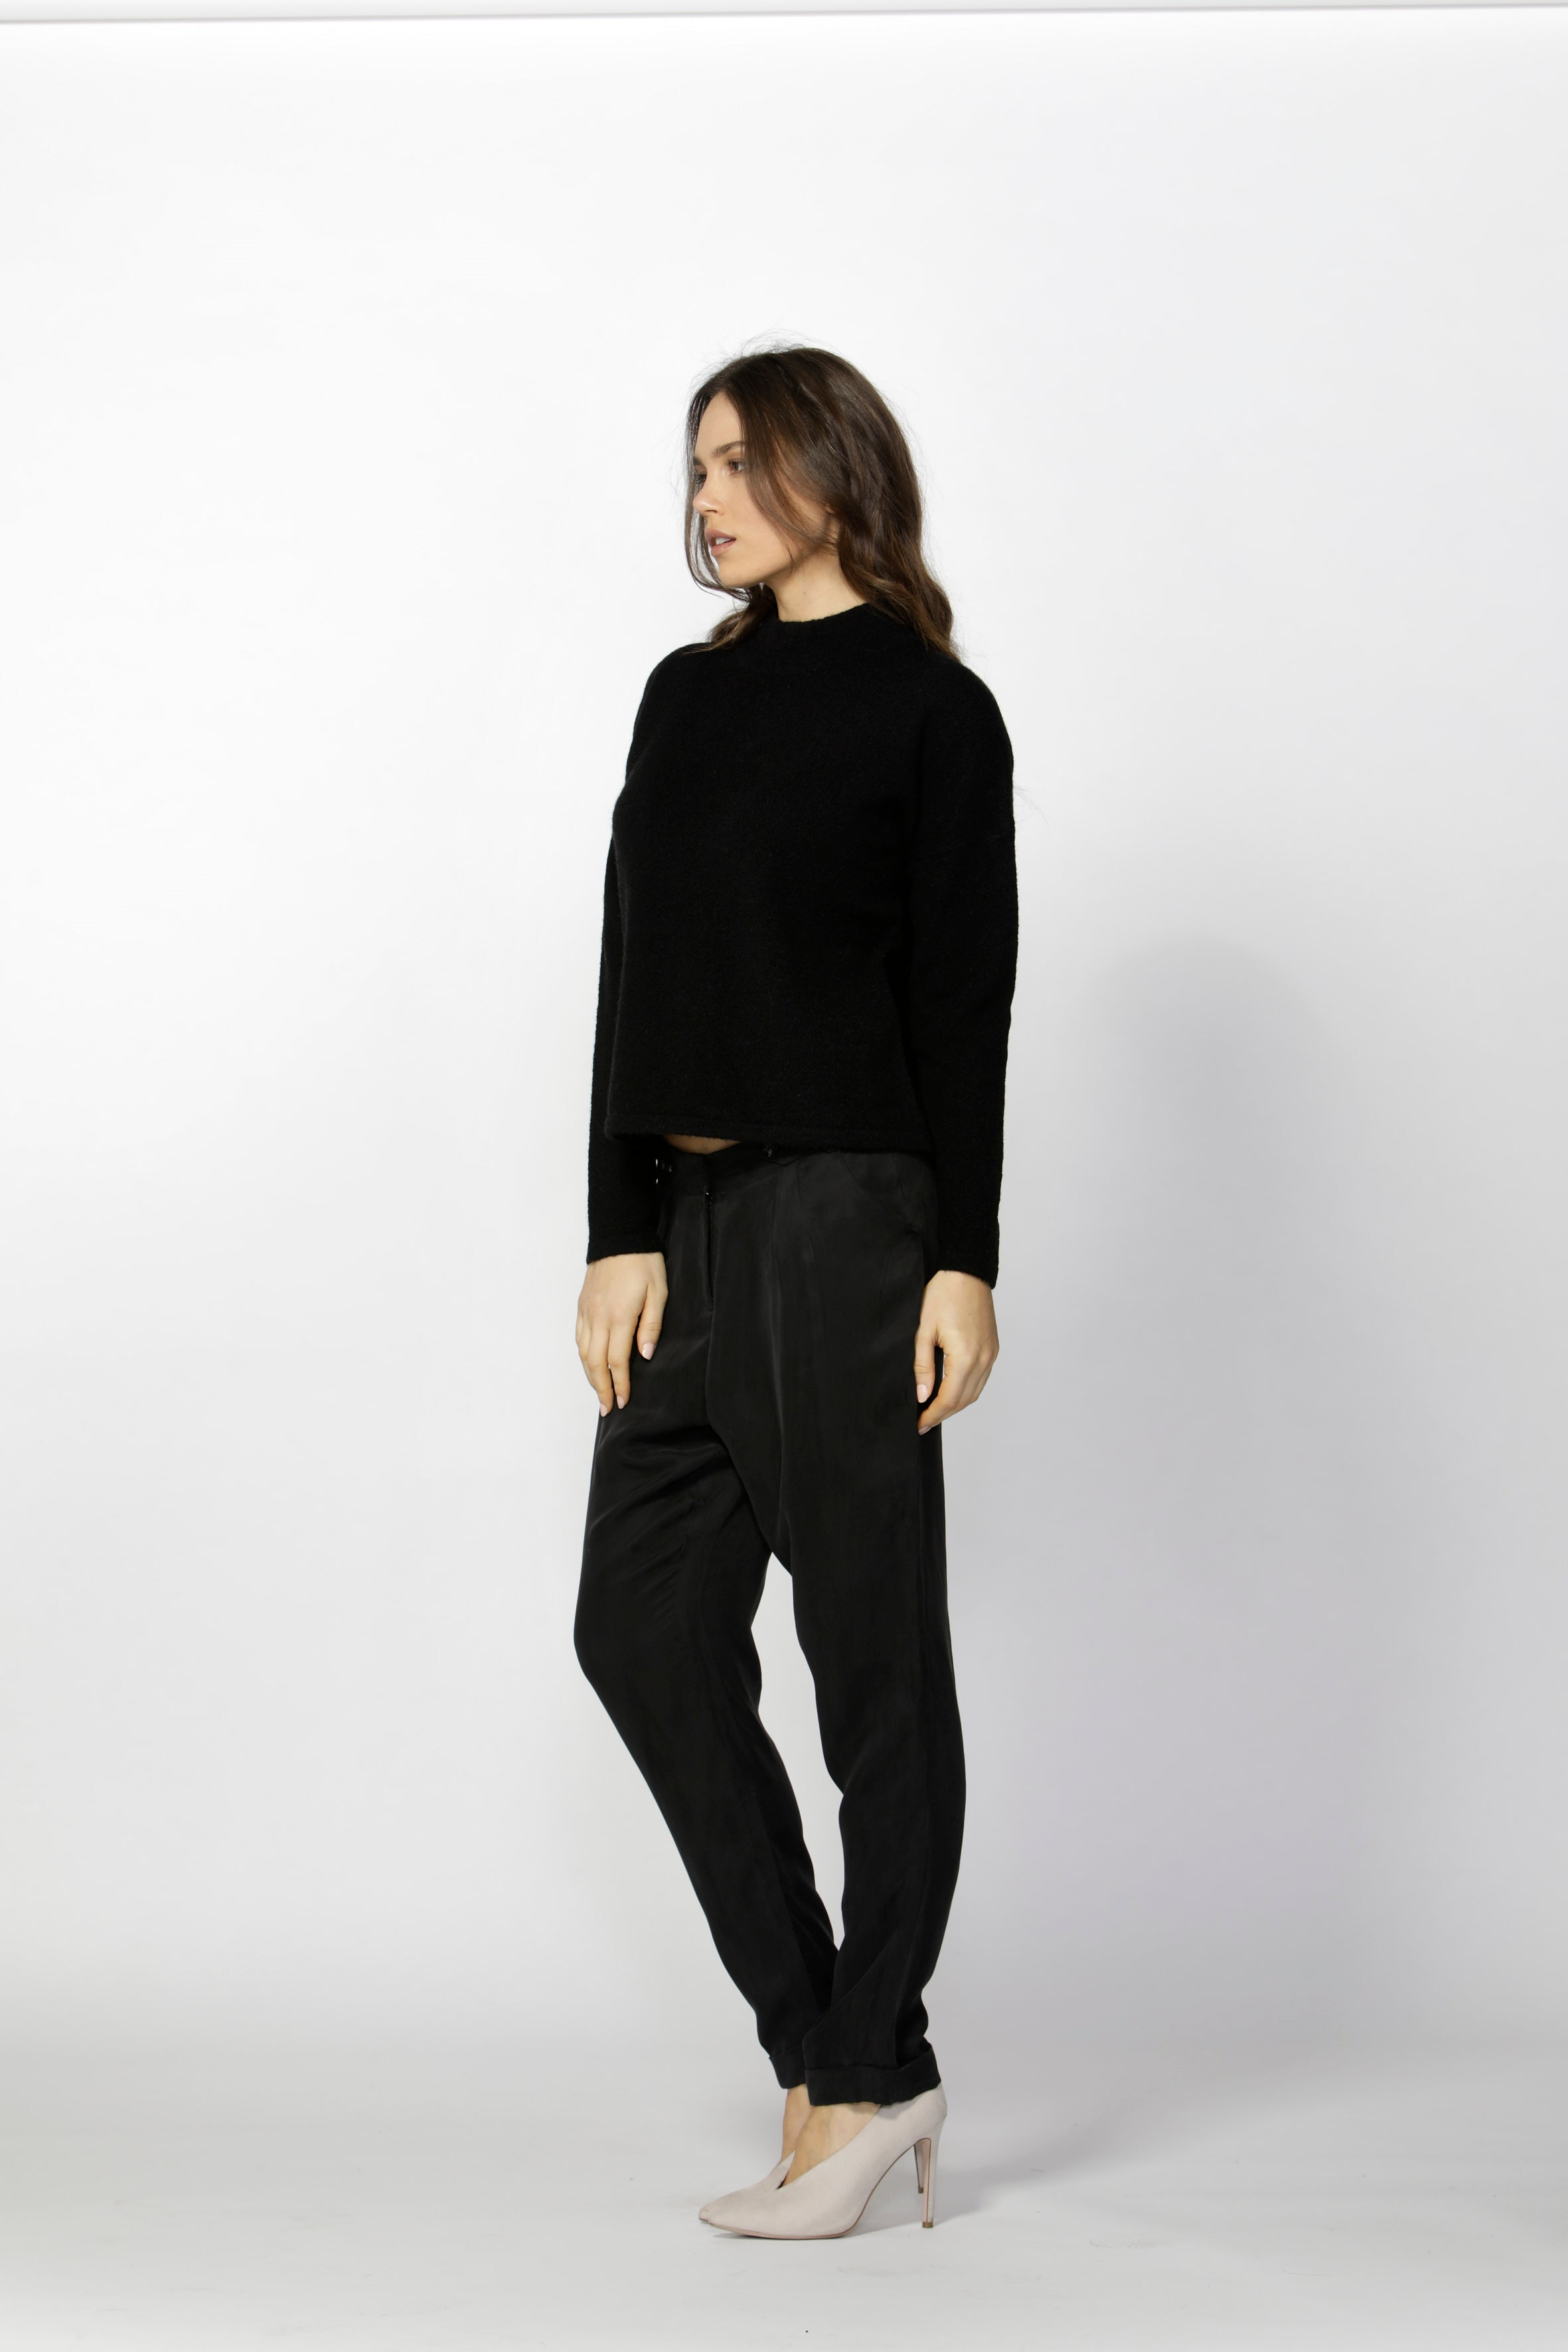 Fate + Becker - Aurelie Tapered Tailored Pant (Black)